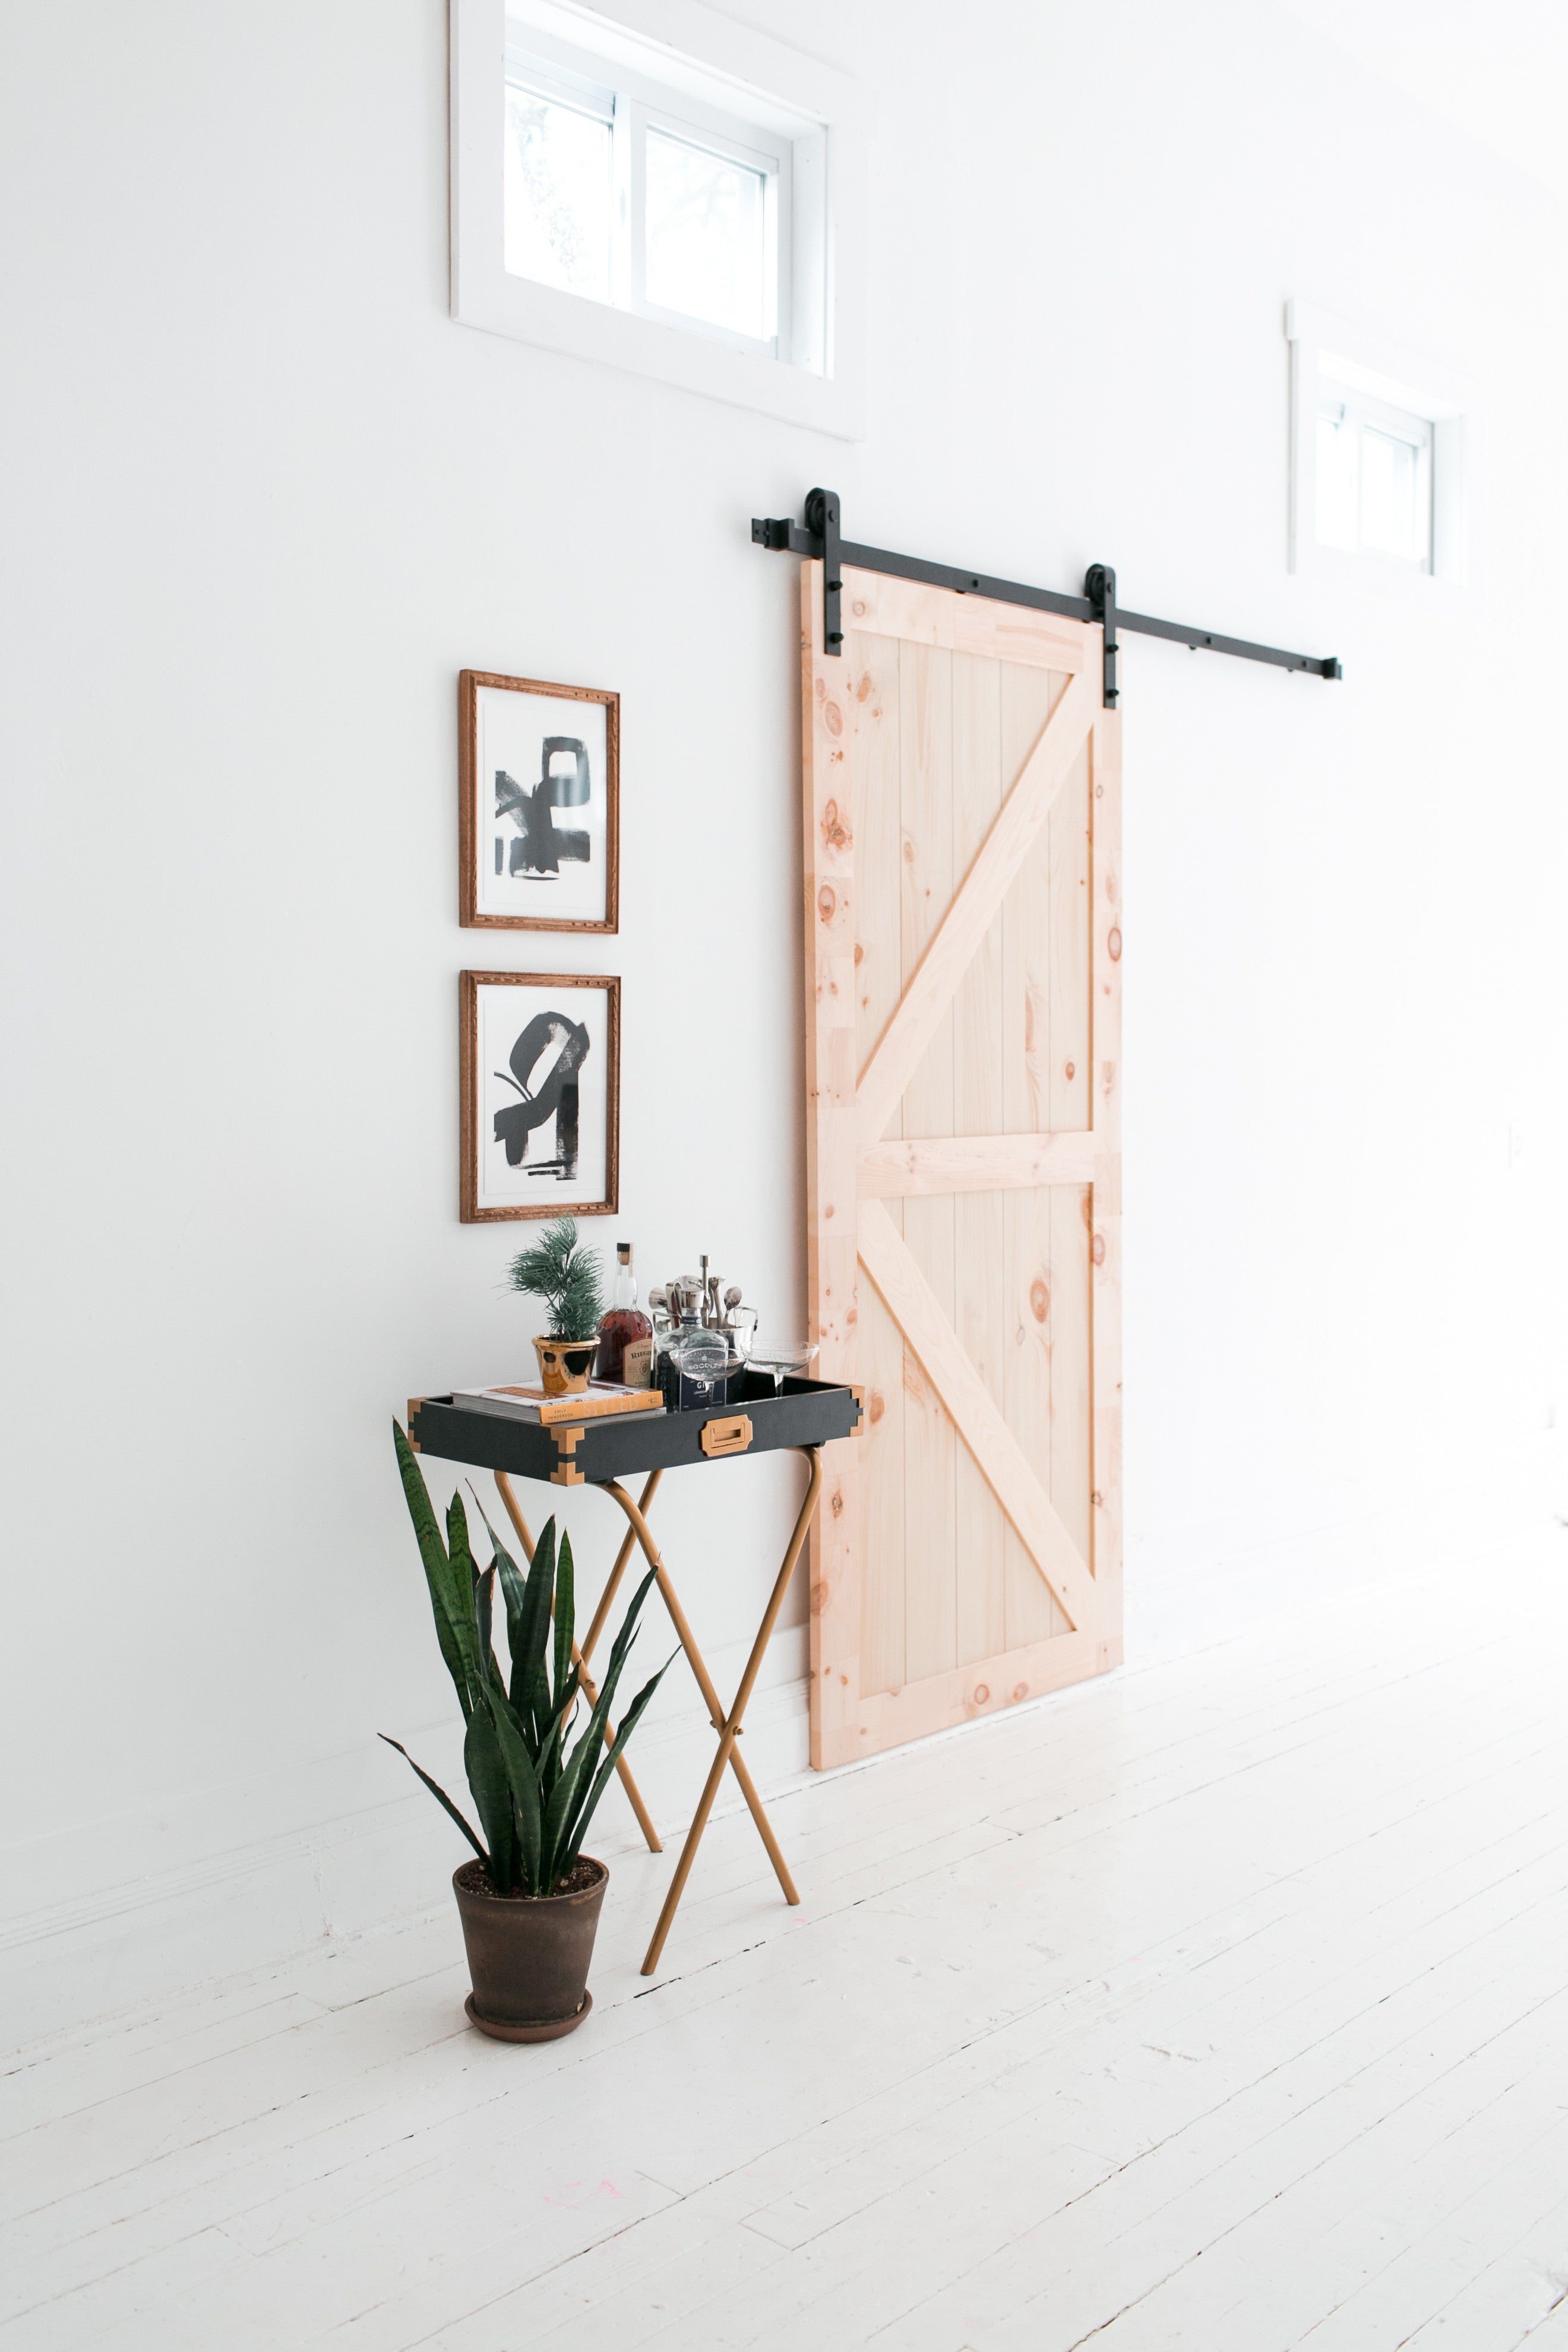 6-Foot 7-Inch Barn Door Hardware Kit